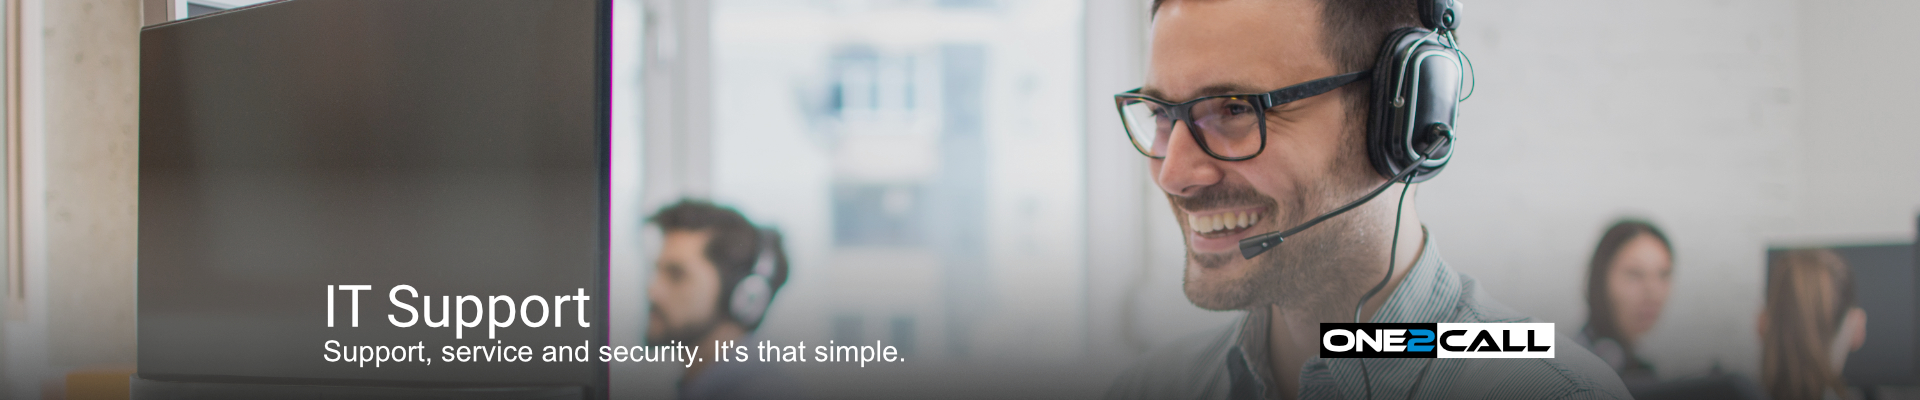 IT Support made simple.